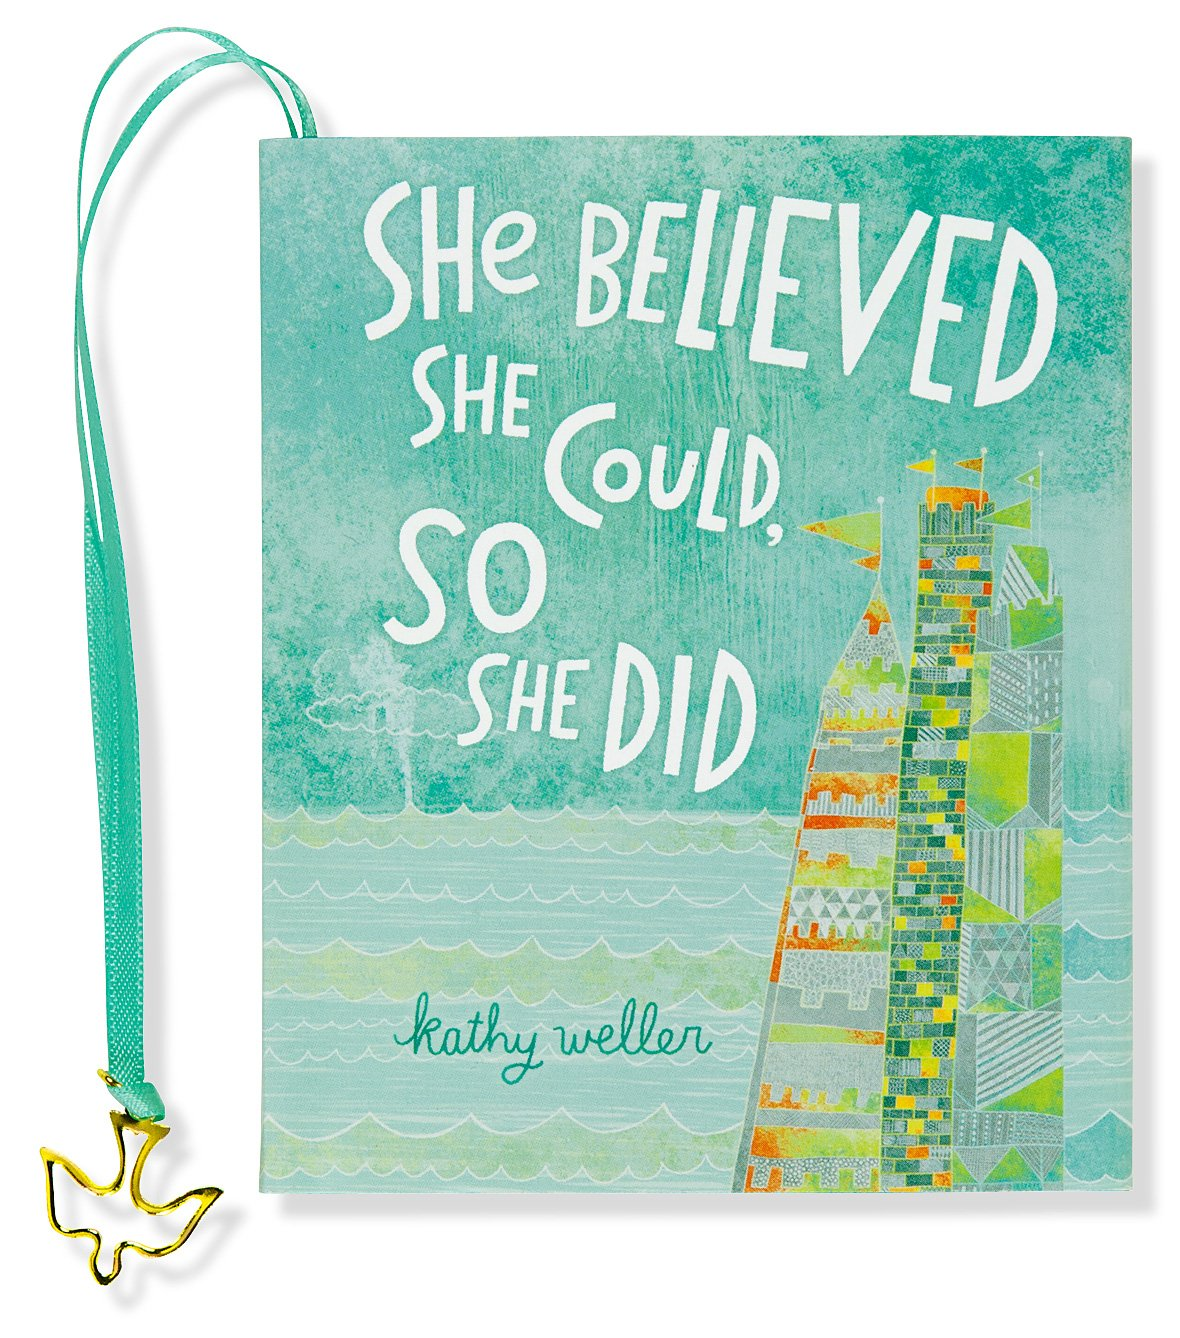 She Believed Could mini book product image